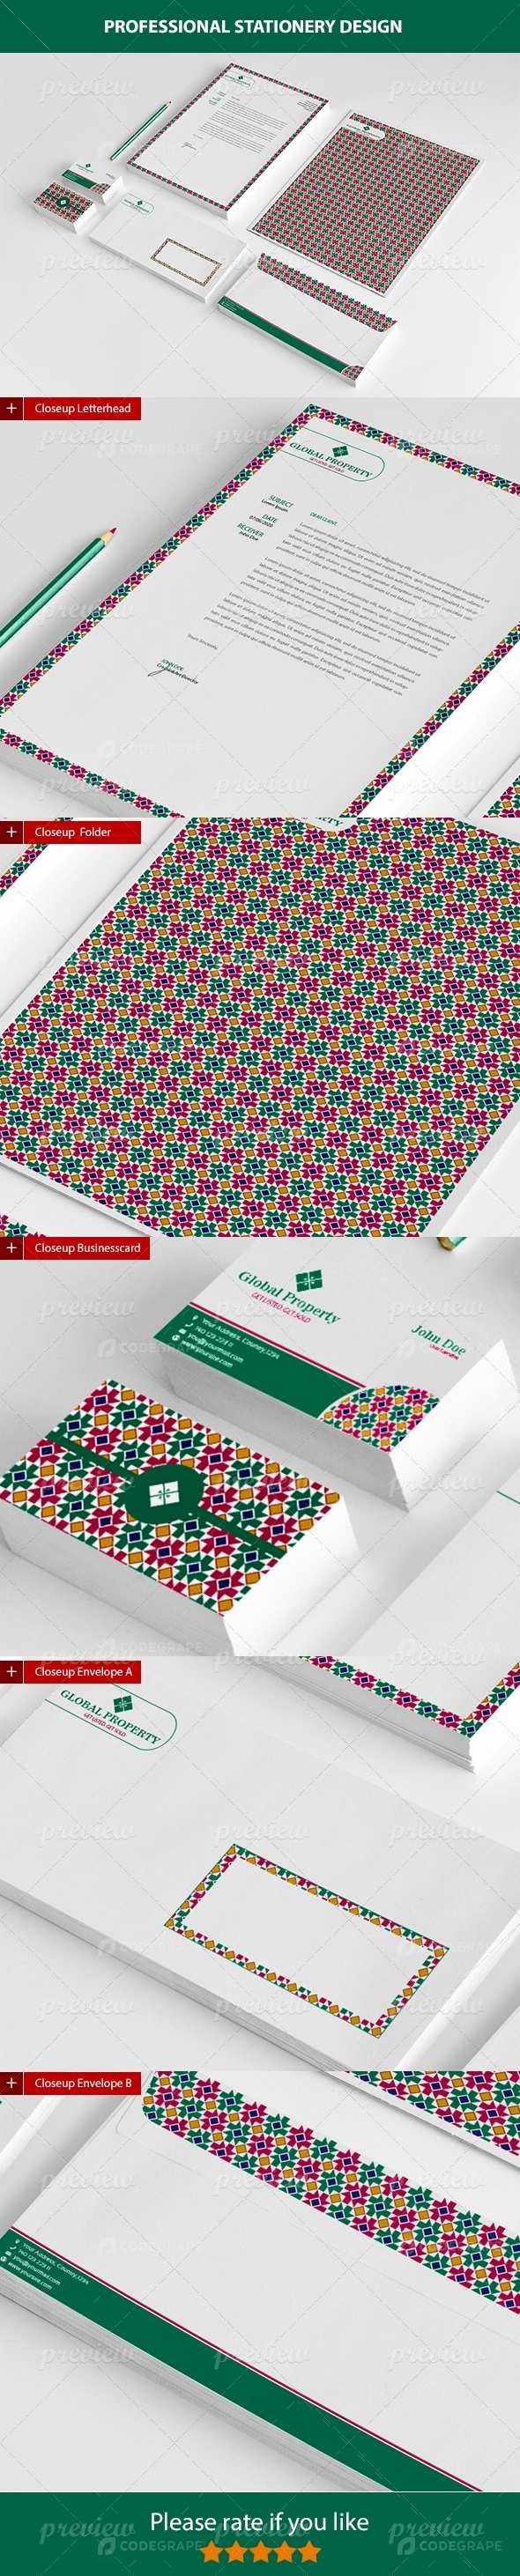 Global Property Stationery Template